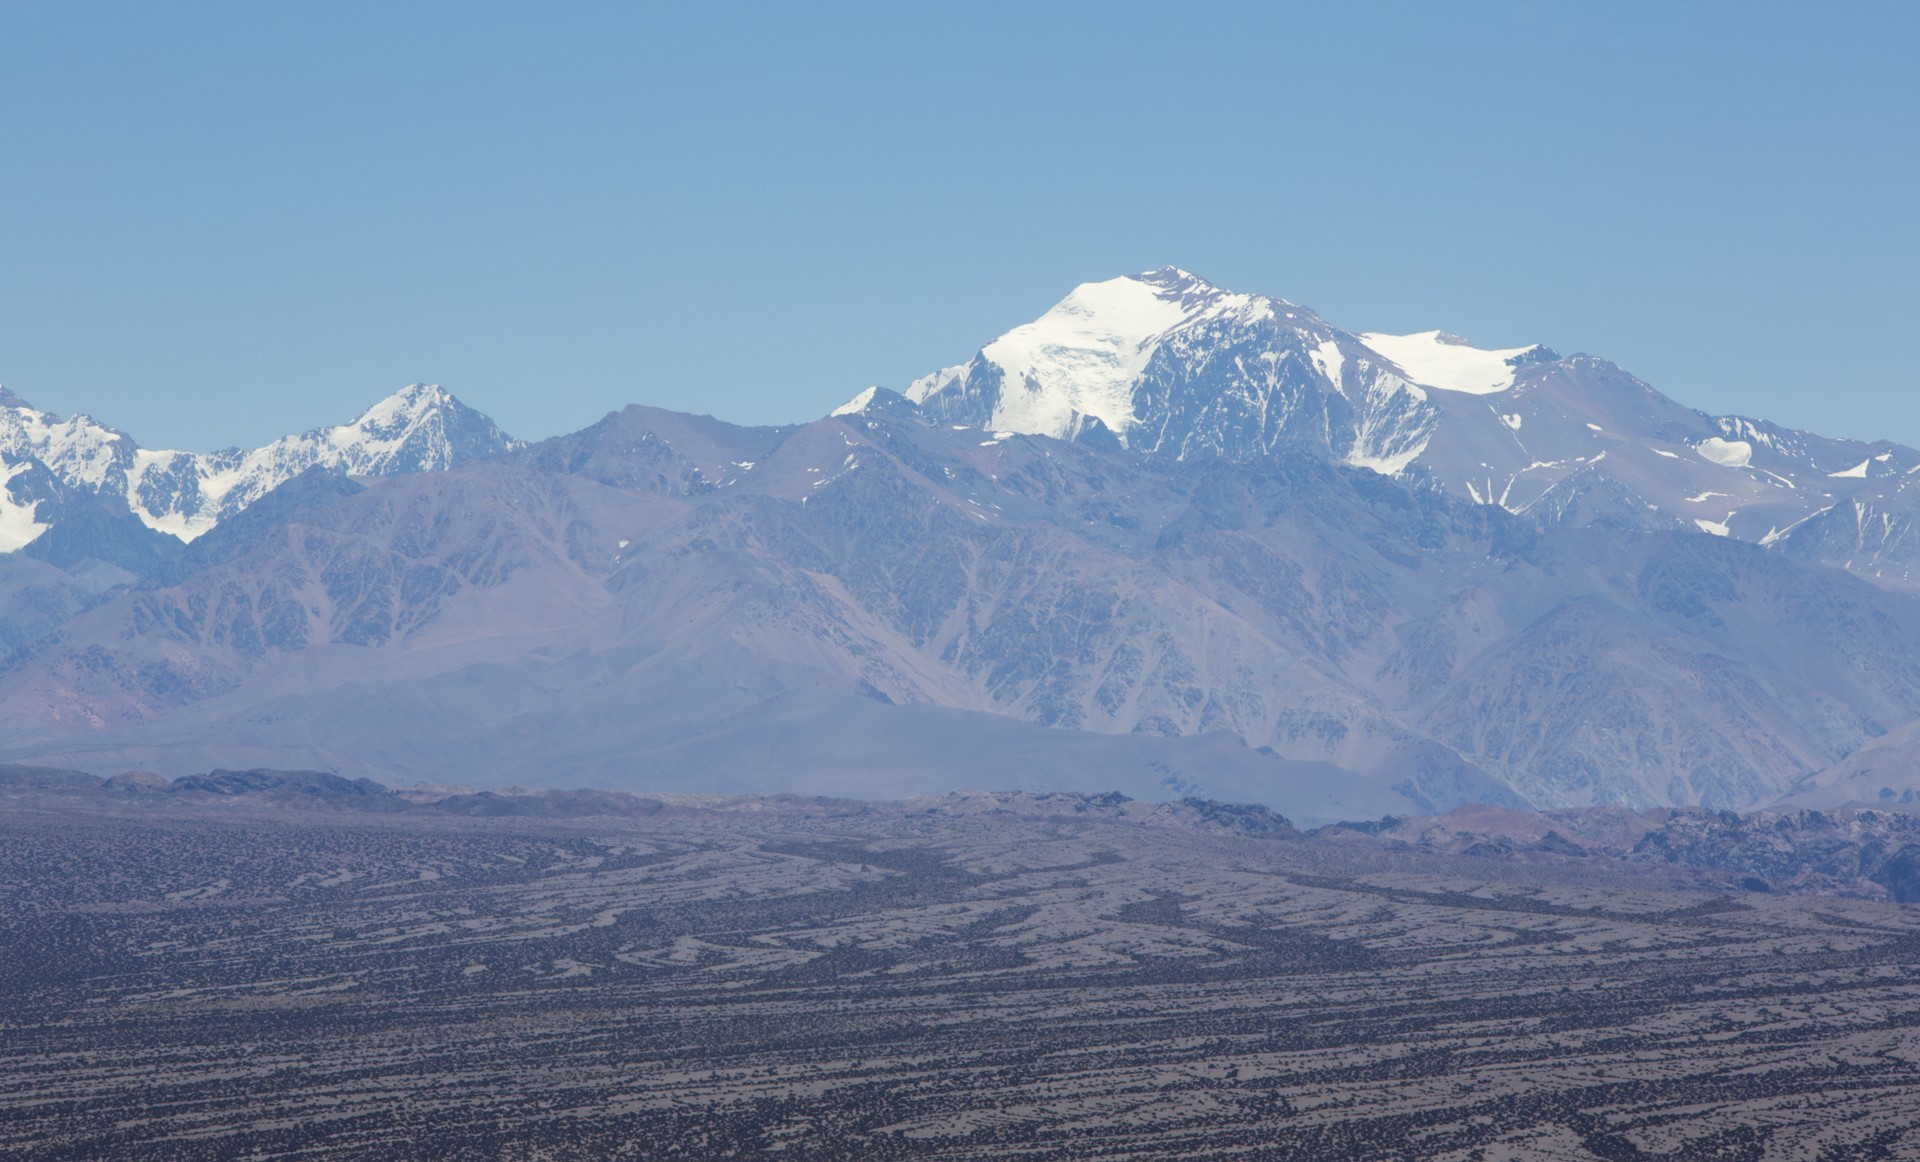 The mountains of El Leoncito National Park, Argentina